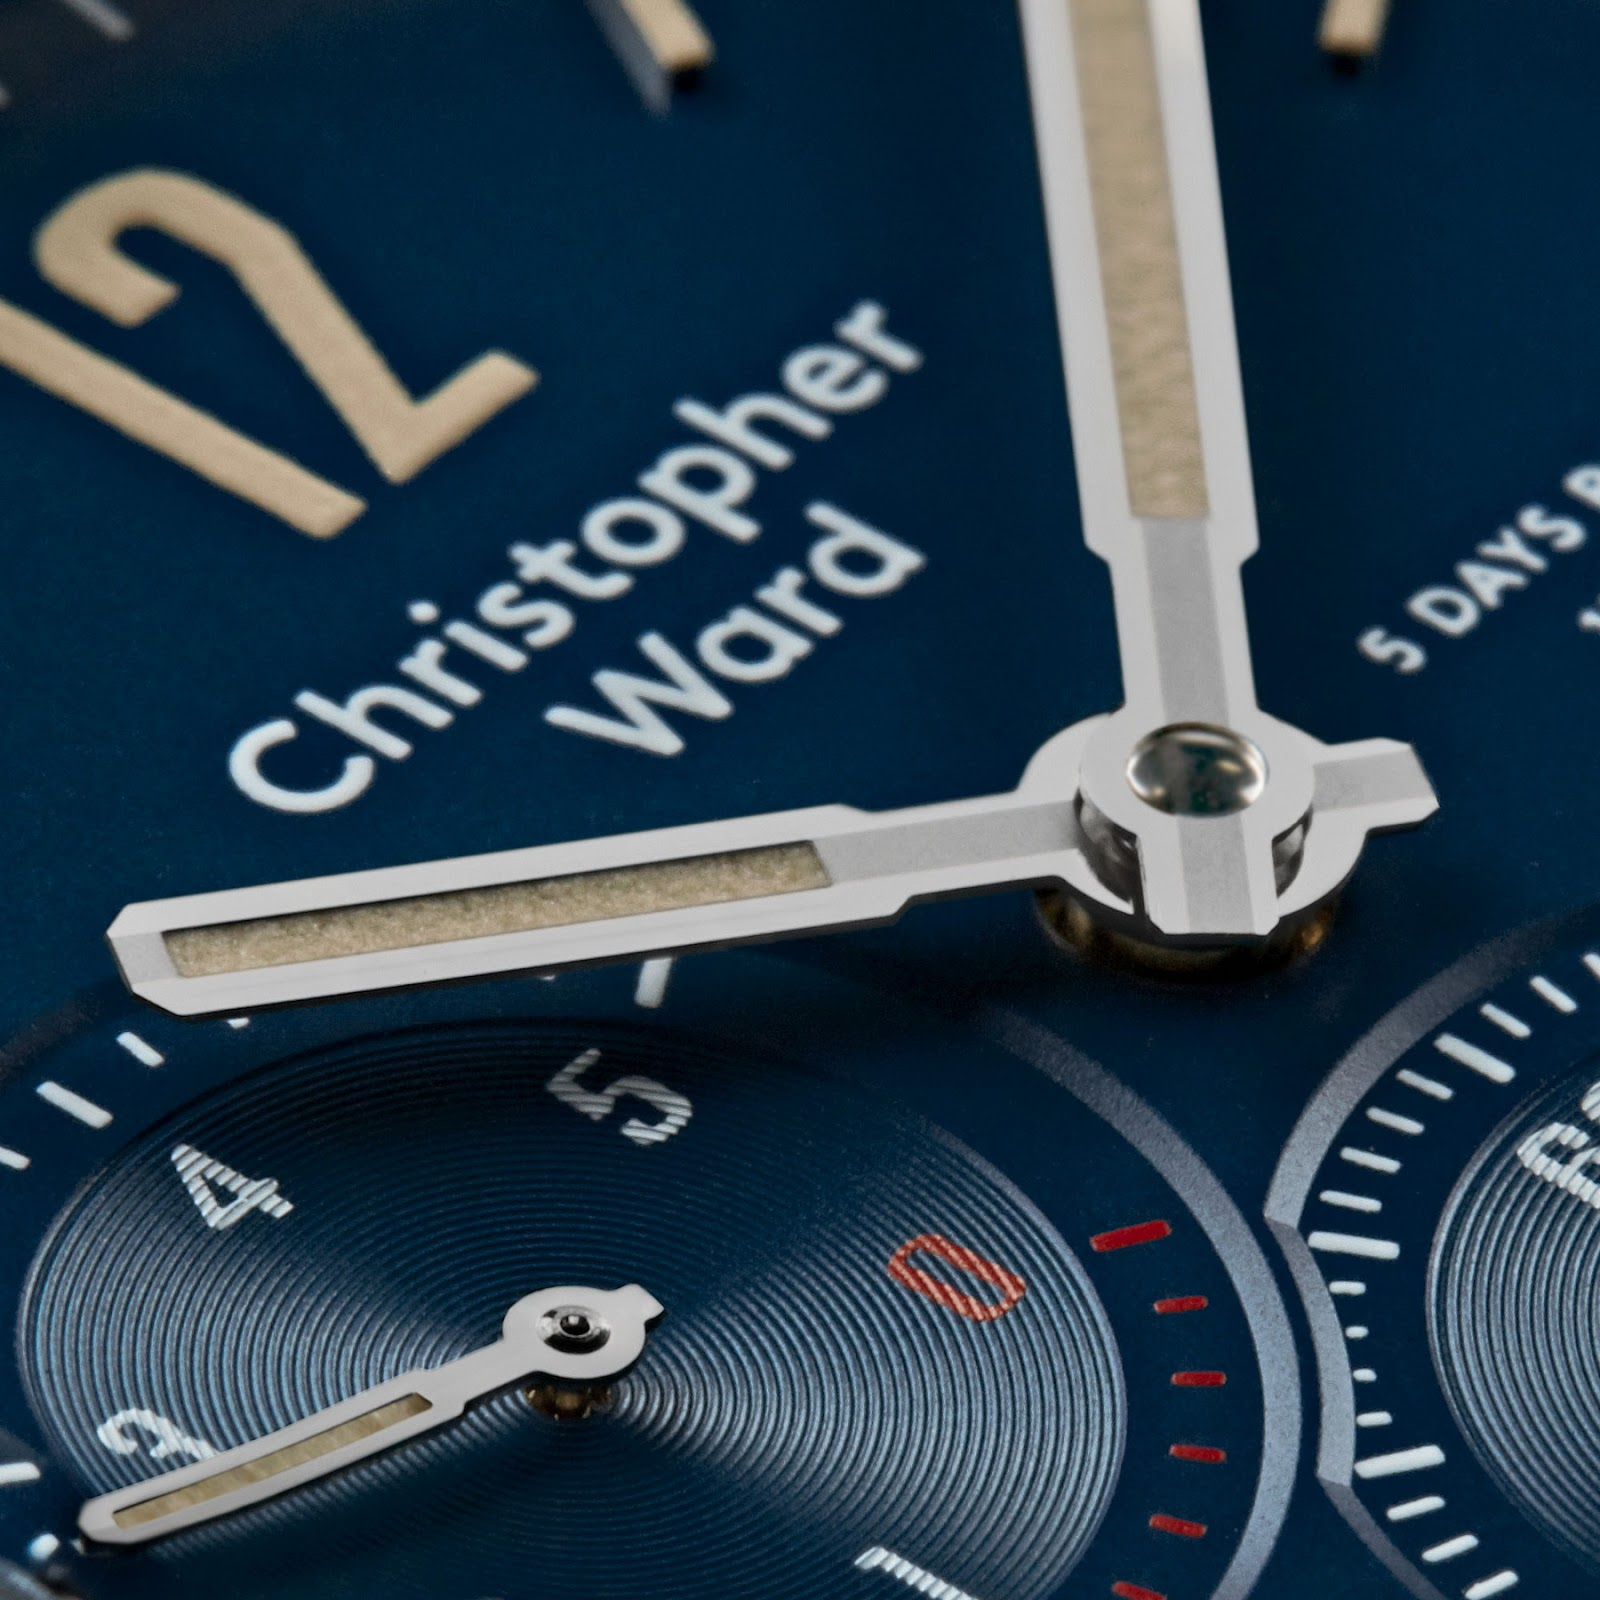 Christopher Ward's new C65 Trident Diver SH21 L.E. CHRISTOPHER%2BWARD%2BC65%2BTrident%2BDiver%2BSH21%2BLIMITED%2BEDITION%2B02